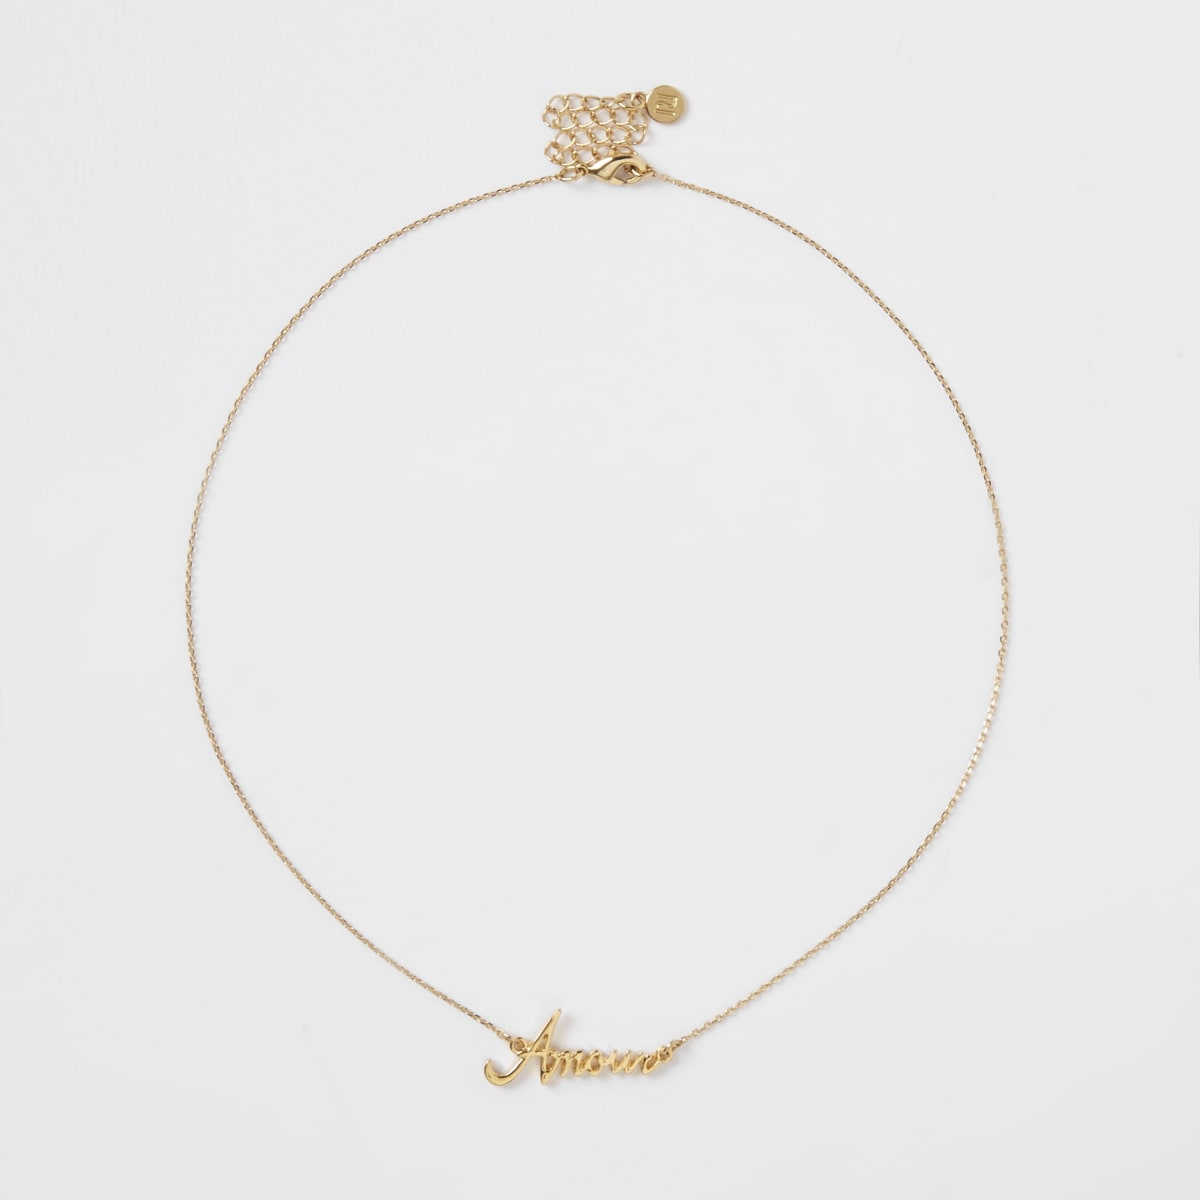 Gold plated 'Amour' pendant necklace